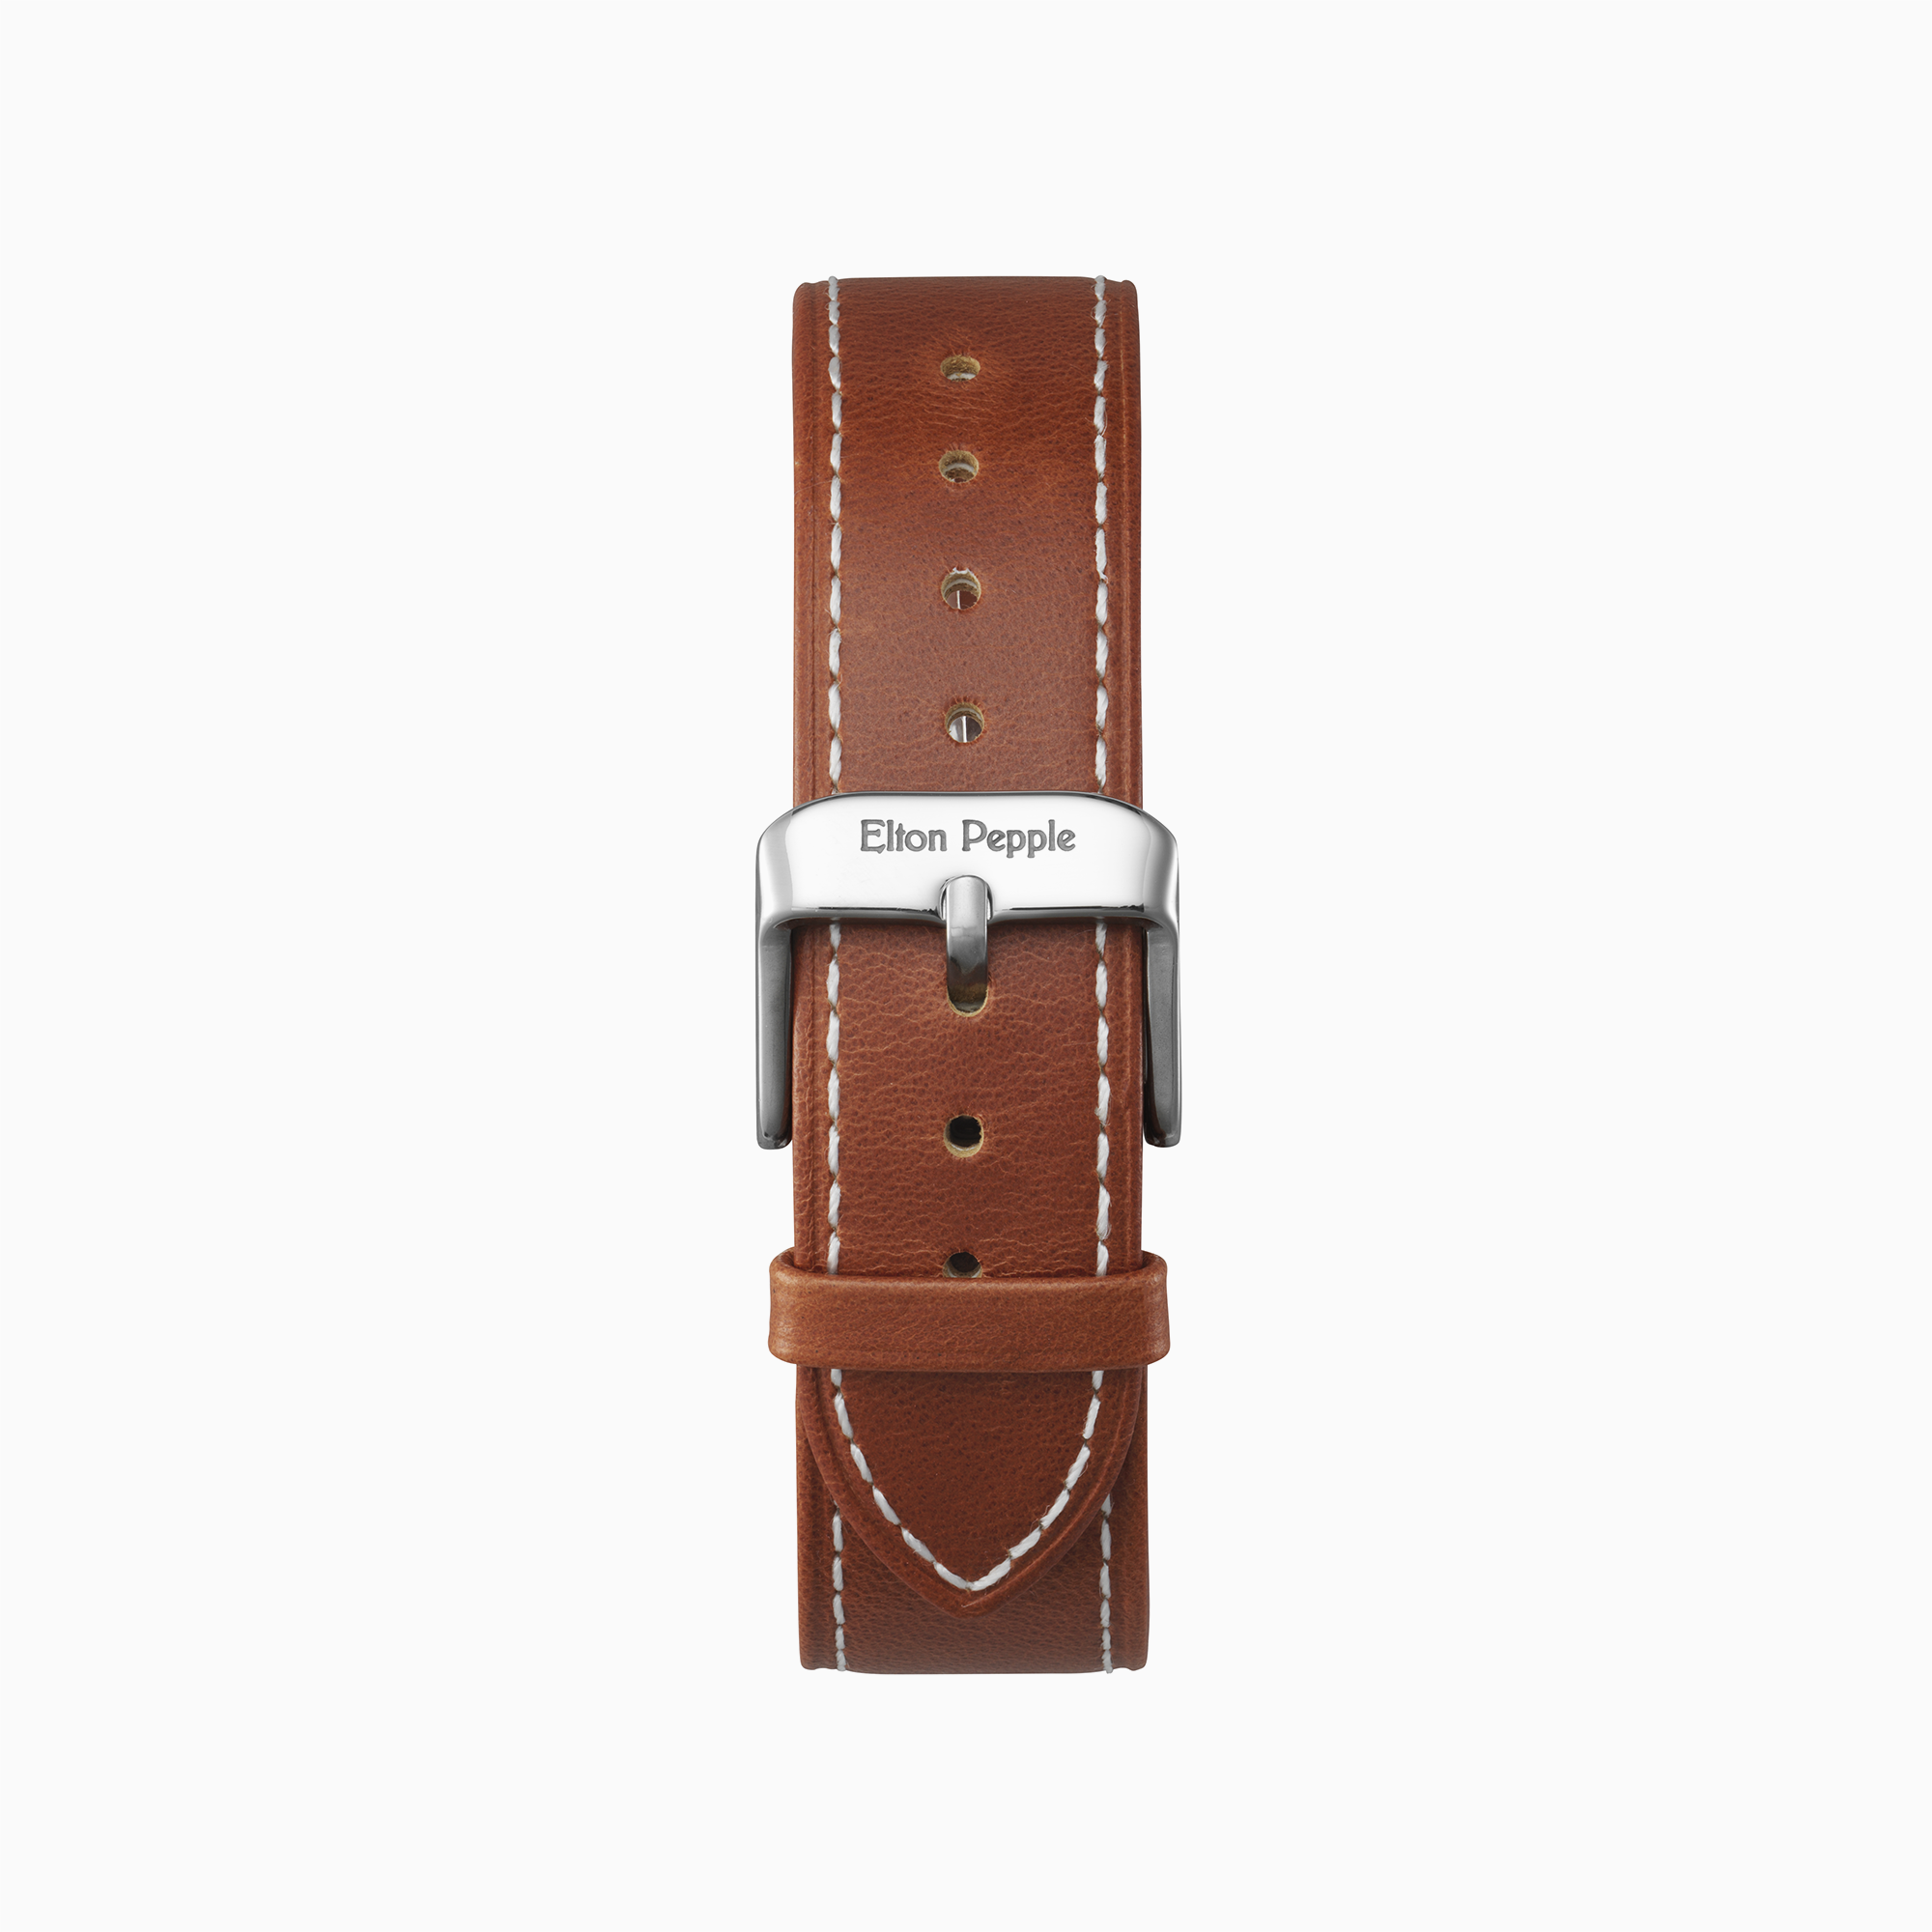 Edgewater Stitch - Silver leather strap